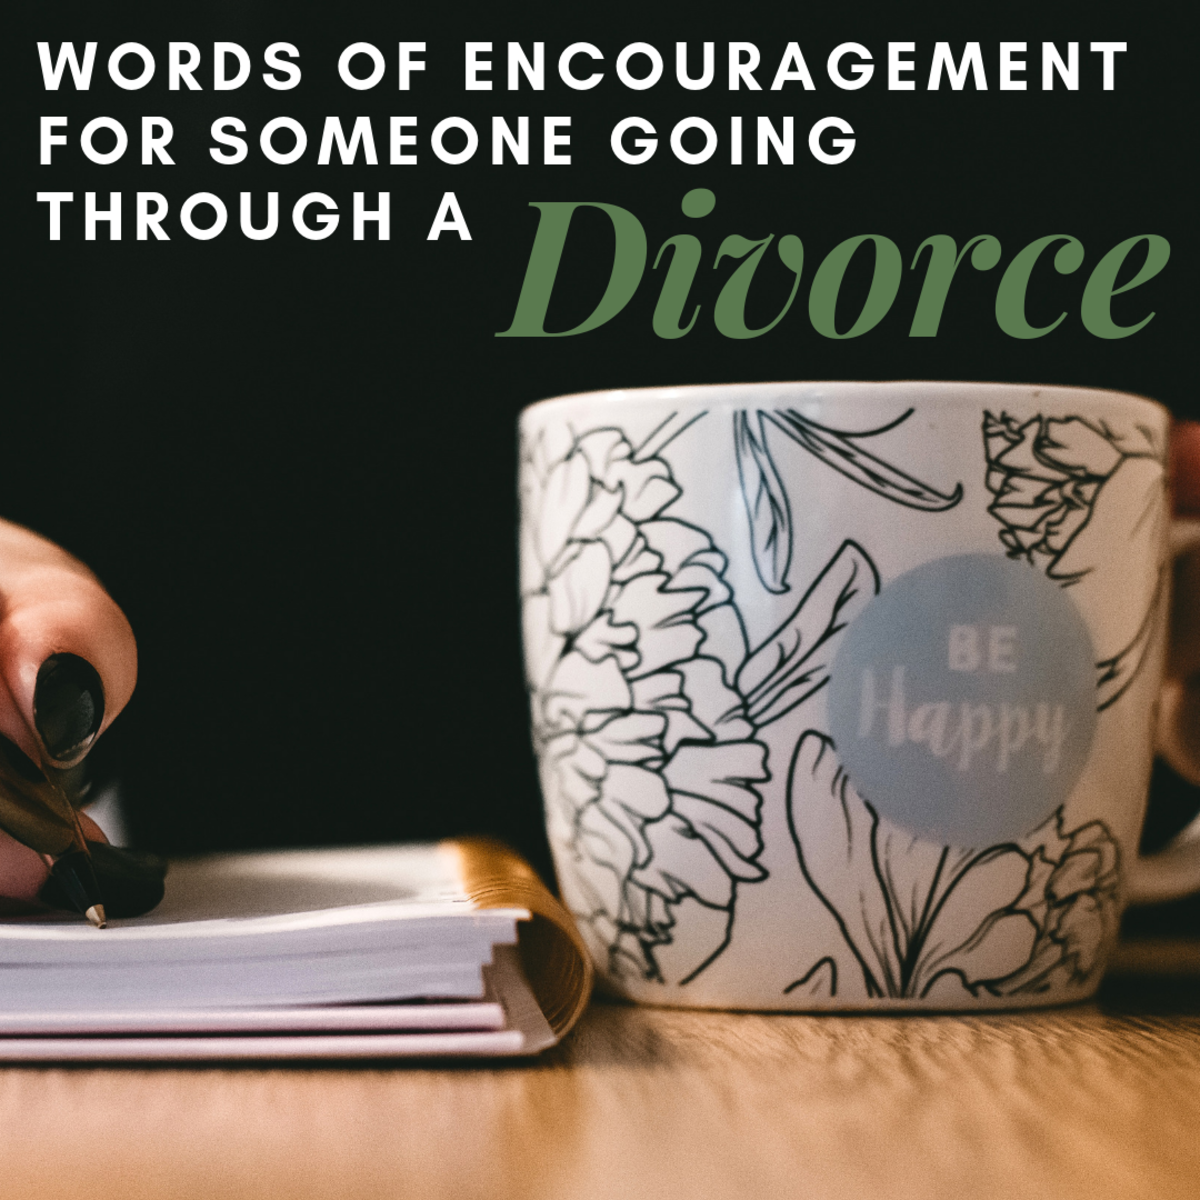 Words of Encouragement and Spiritual Messages for Someone Going Through a Divorce